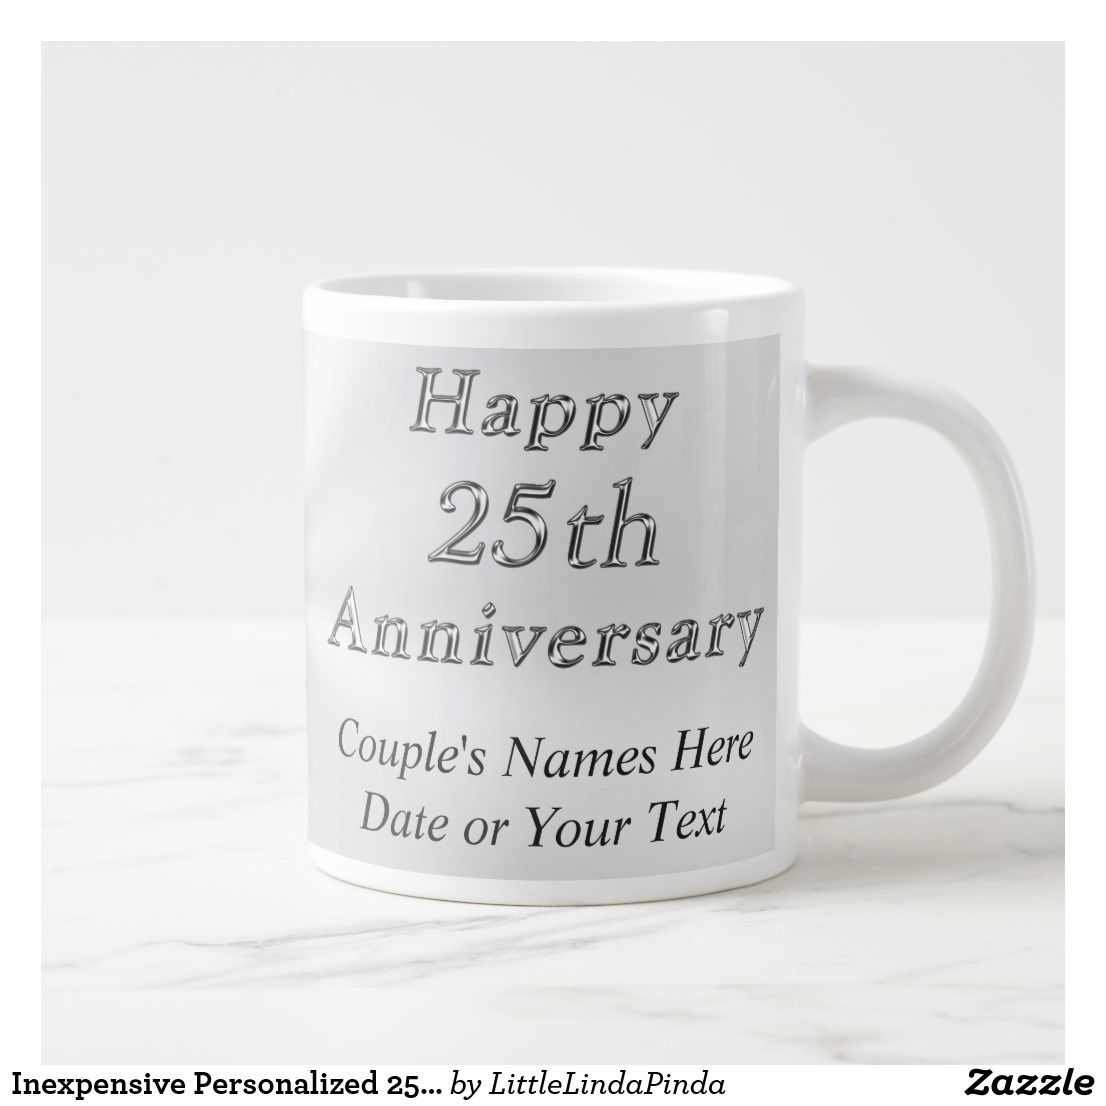 Inexpensive personalized 25th anniversary gifts giant